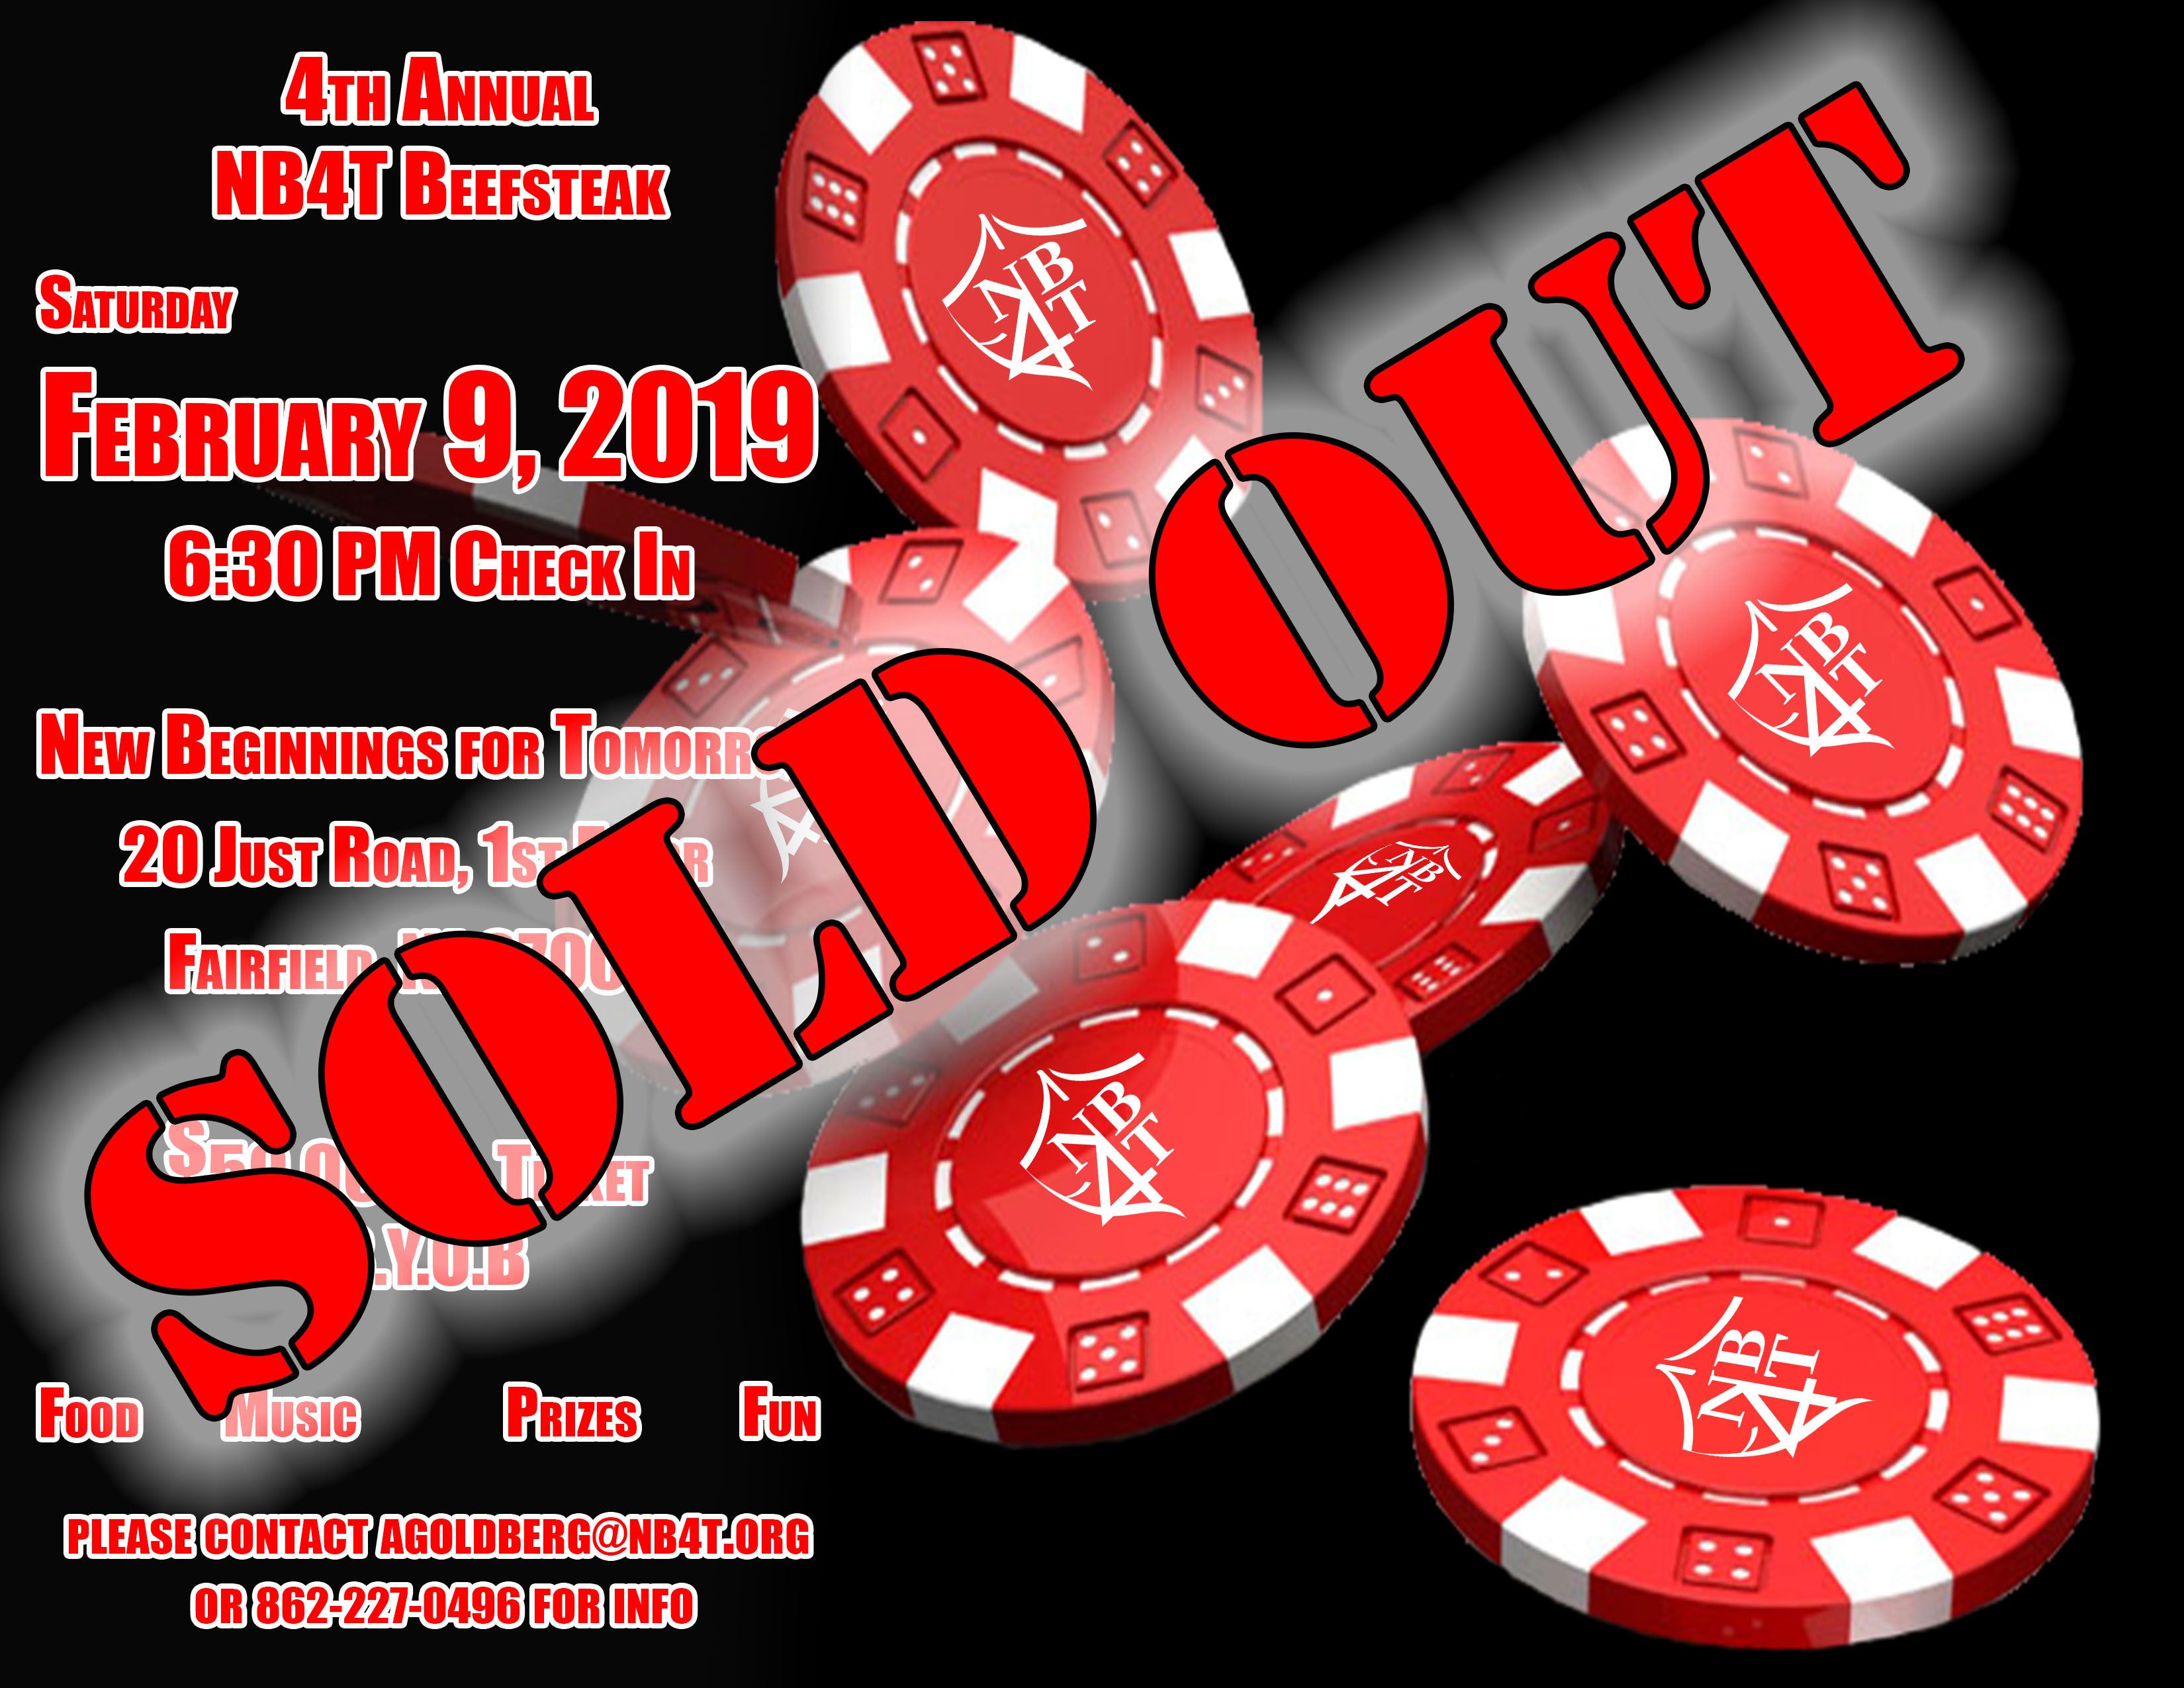 beefsteak sold out